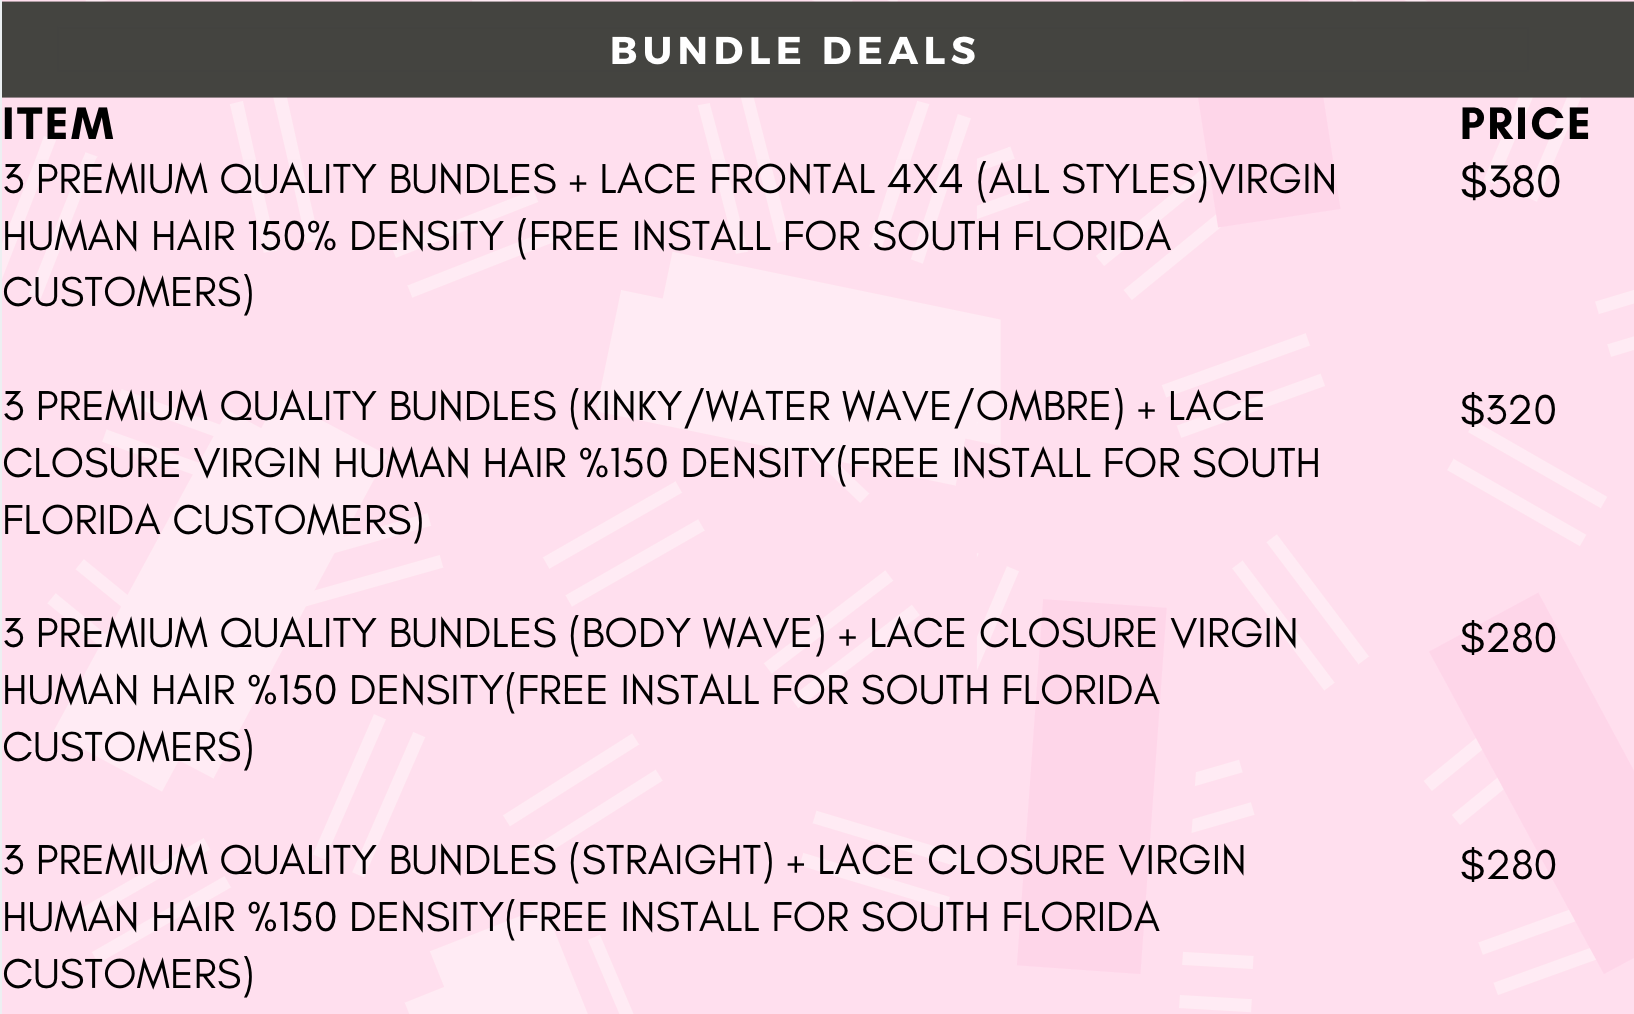 sew in fort Lauderdale, cheap bundle deals fort Lauderdale, lace installs fort lauderdale